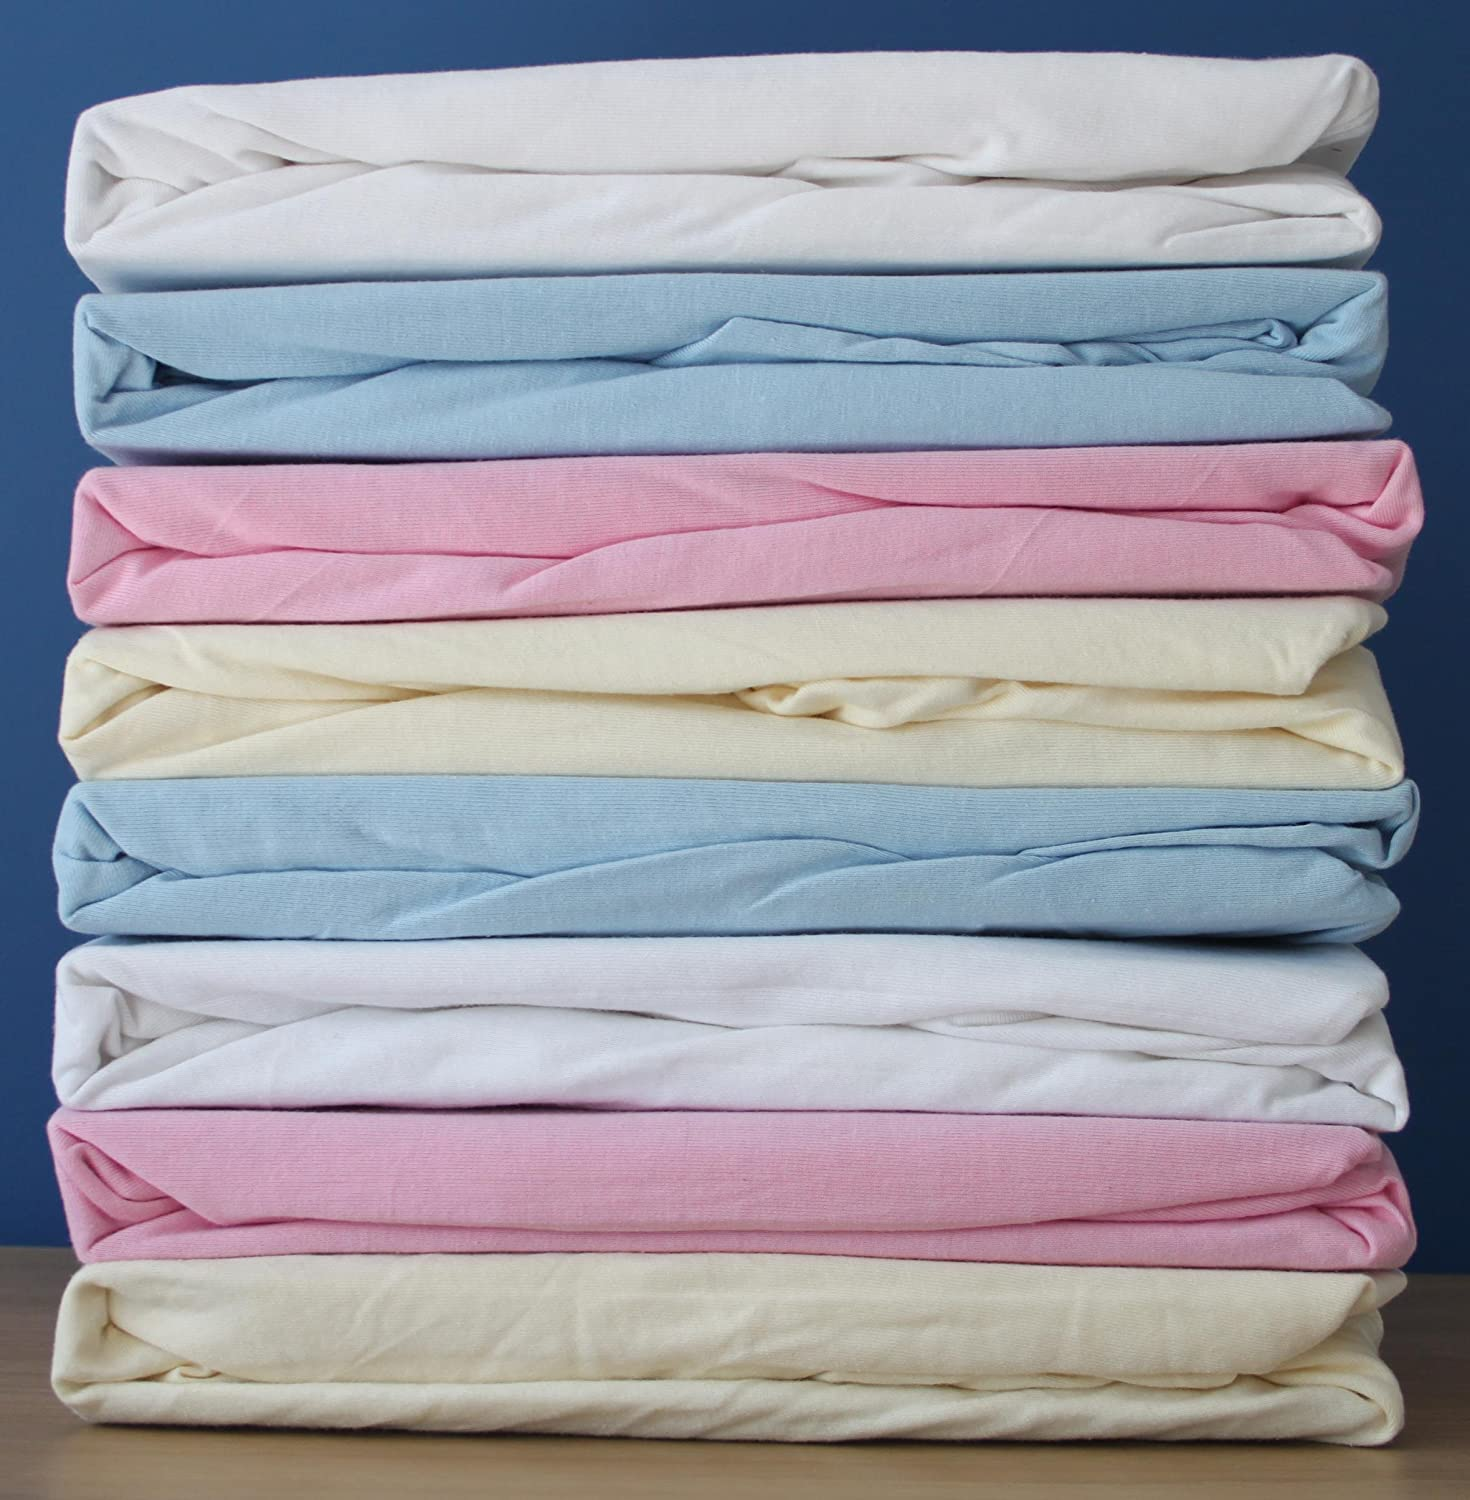 2-Piece Cream /& Pink Dudu N Girlie Cotton Jersey Cot Bed Fitted Sheets